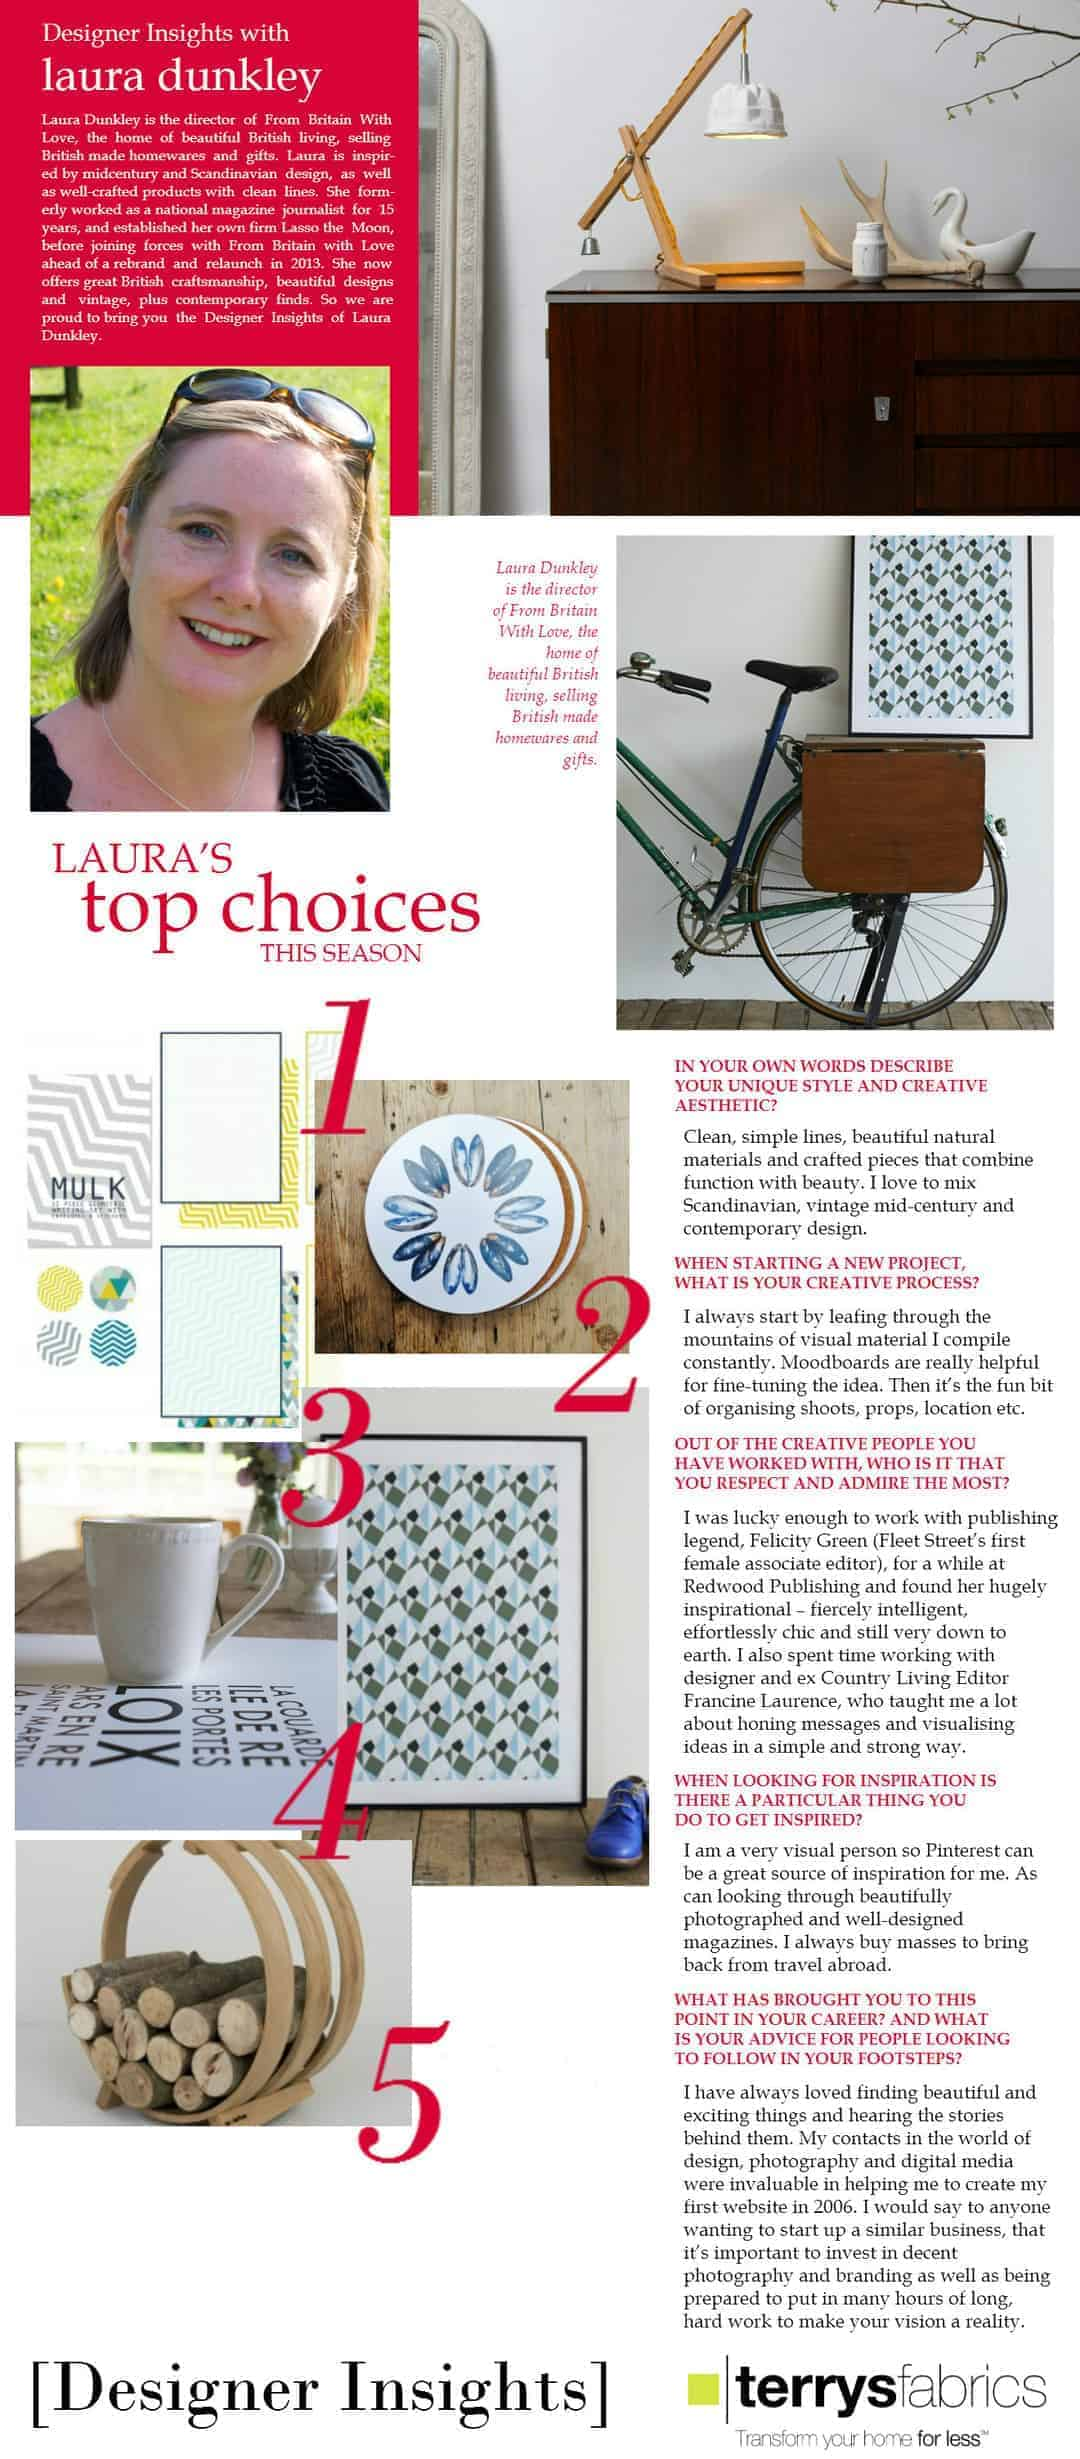 Designer-Insights-Laura-Dunkley-1